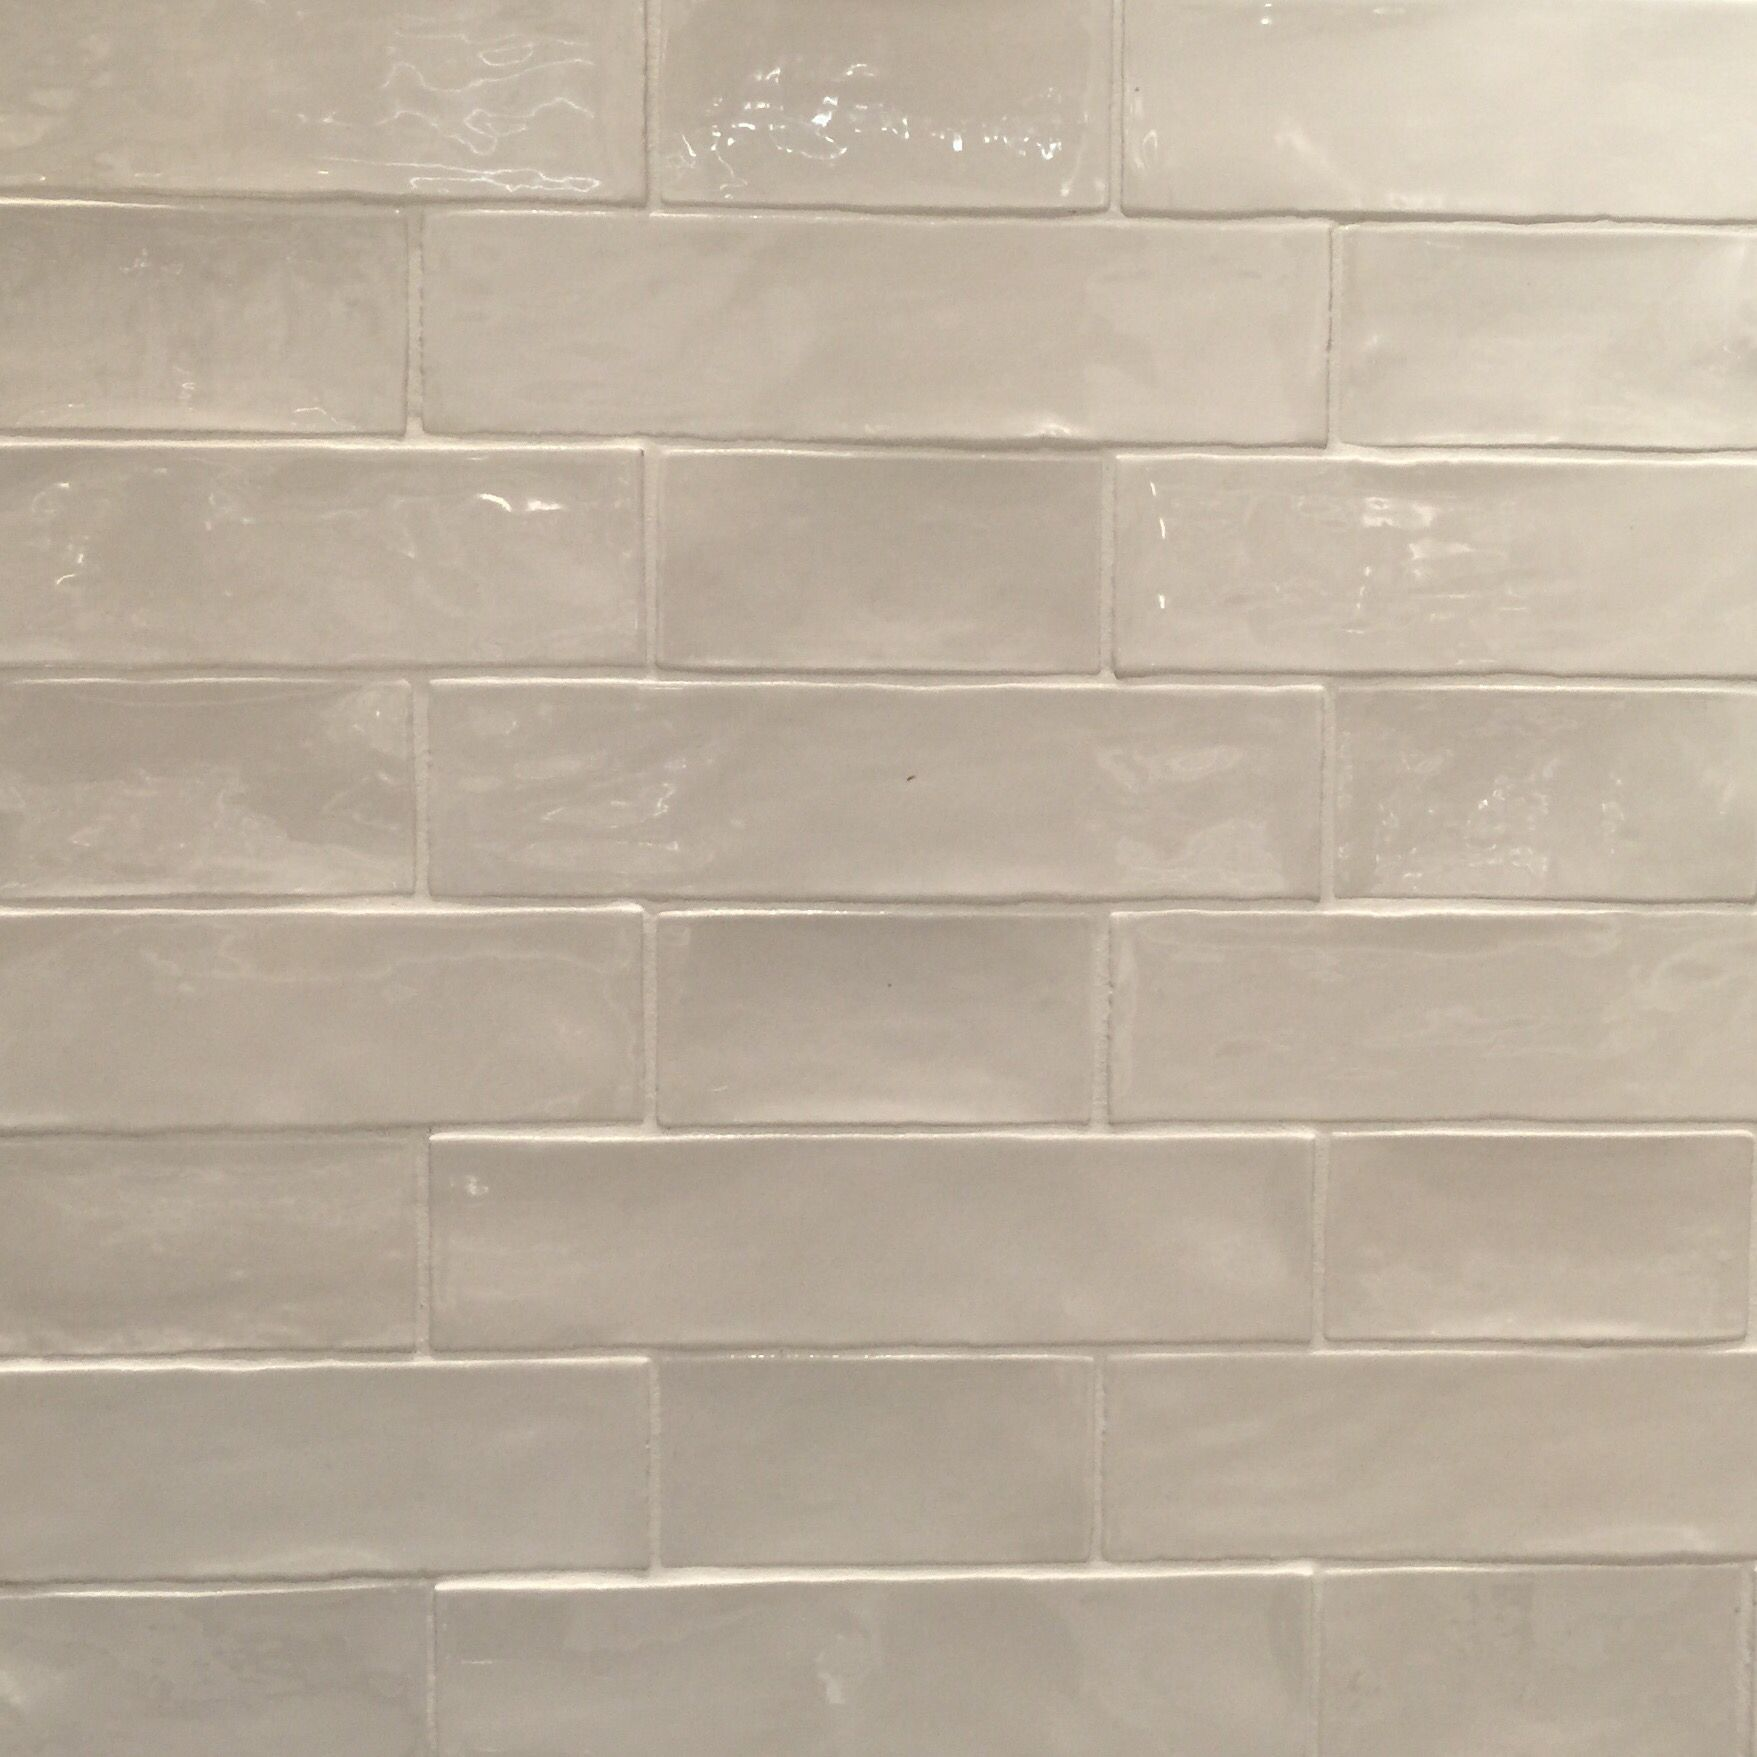 handmade look subway tile handmade subway tile in alternating 3x6 and 3x12 pattern 1567